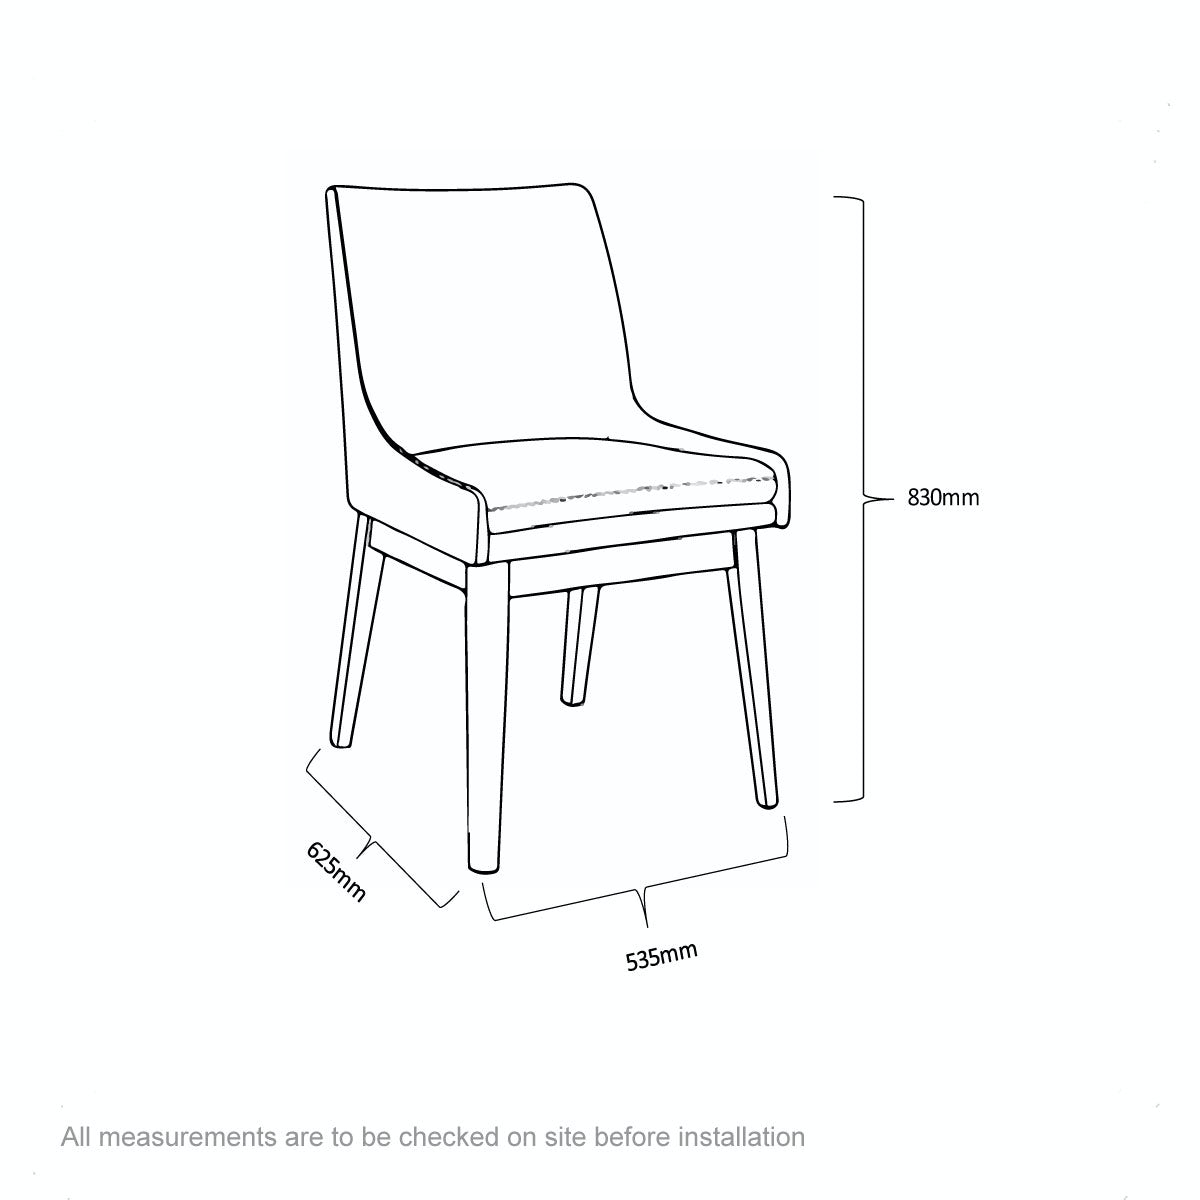 Dimensions for Lincoln walnut and grey/green pair of dining chairs